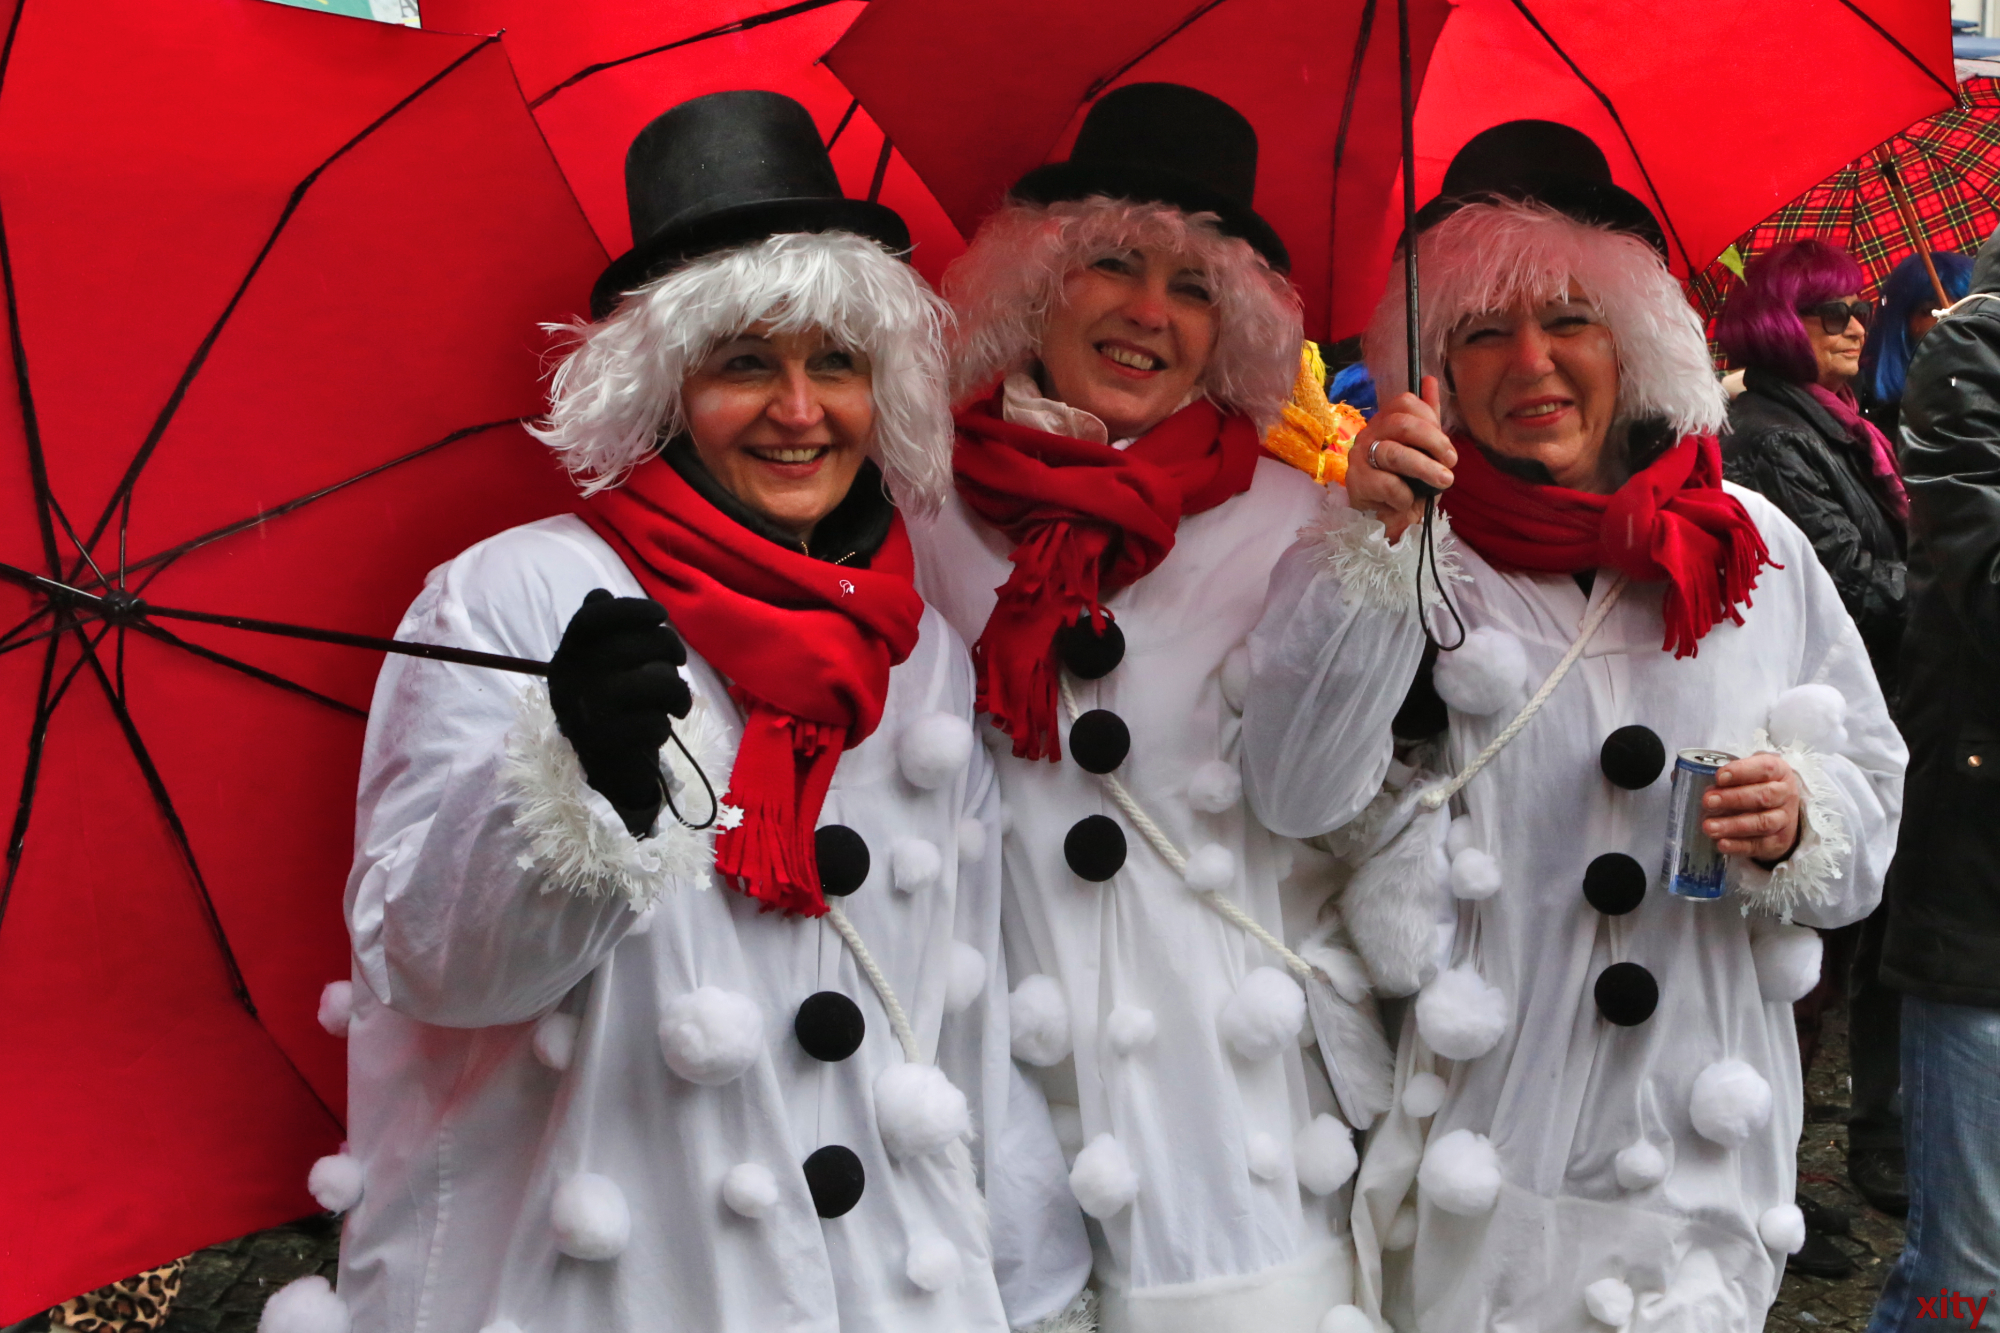 These women came dressed as snowmen in concordance with the weather. (Photo: xity)